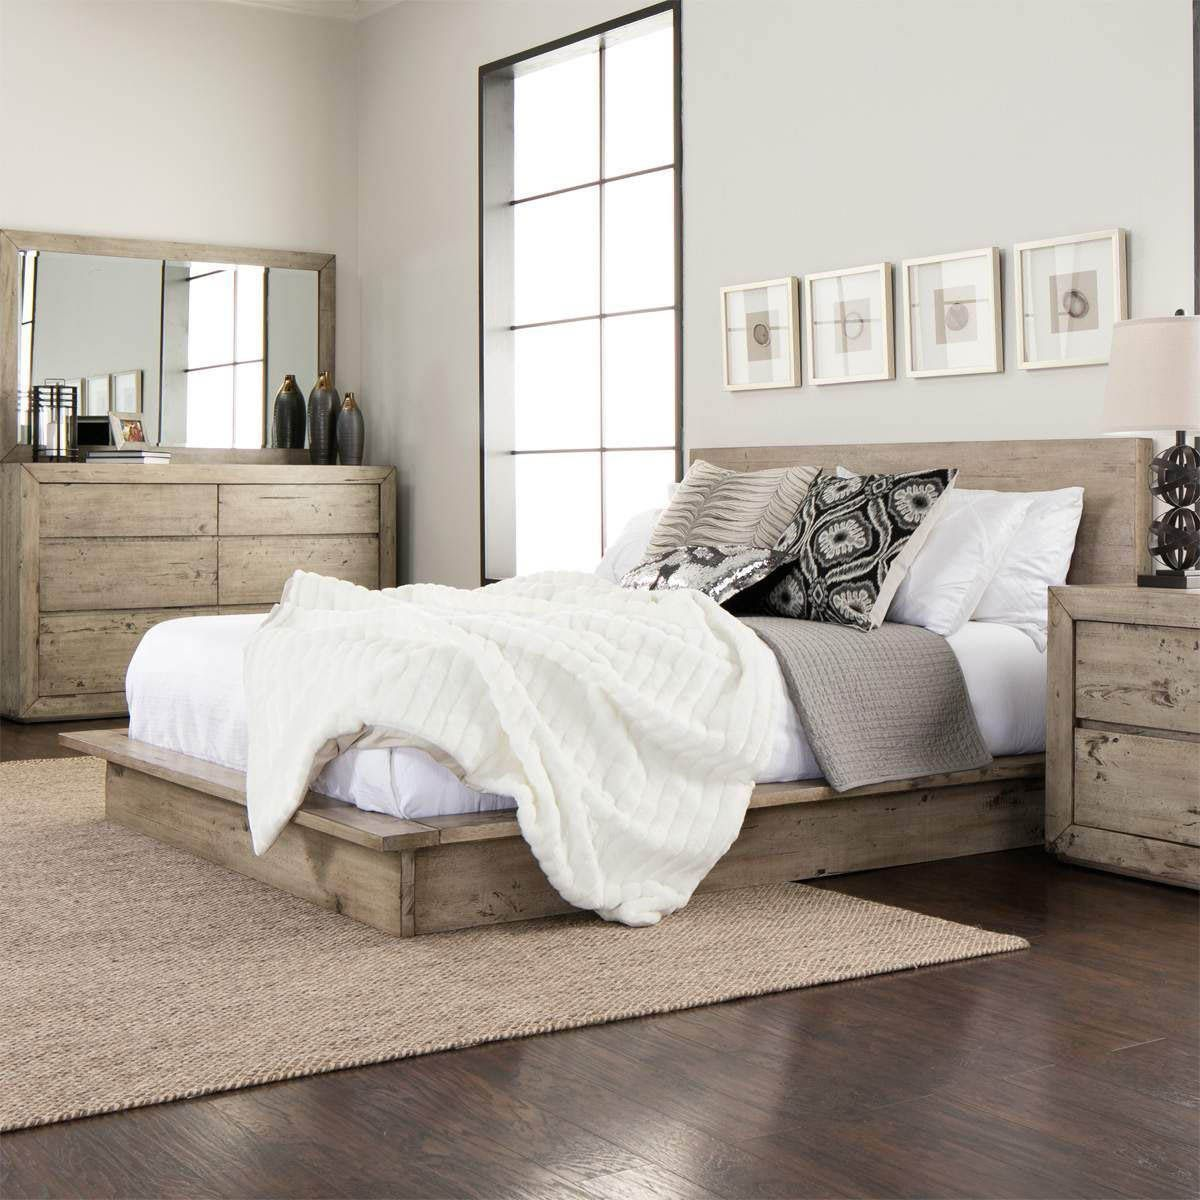 Cozy Houzz Modern Bedroom Sets For Your Home